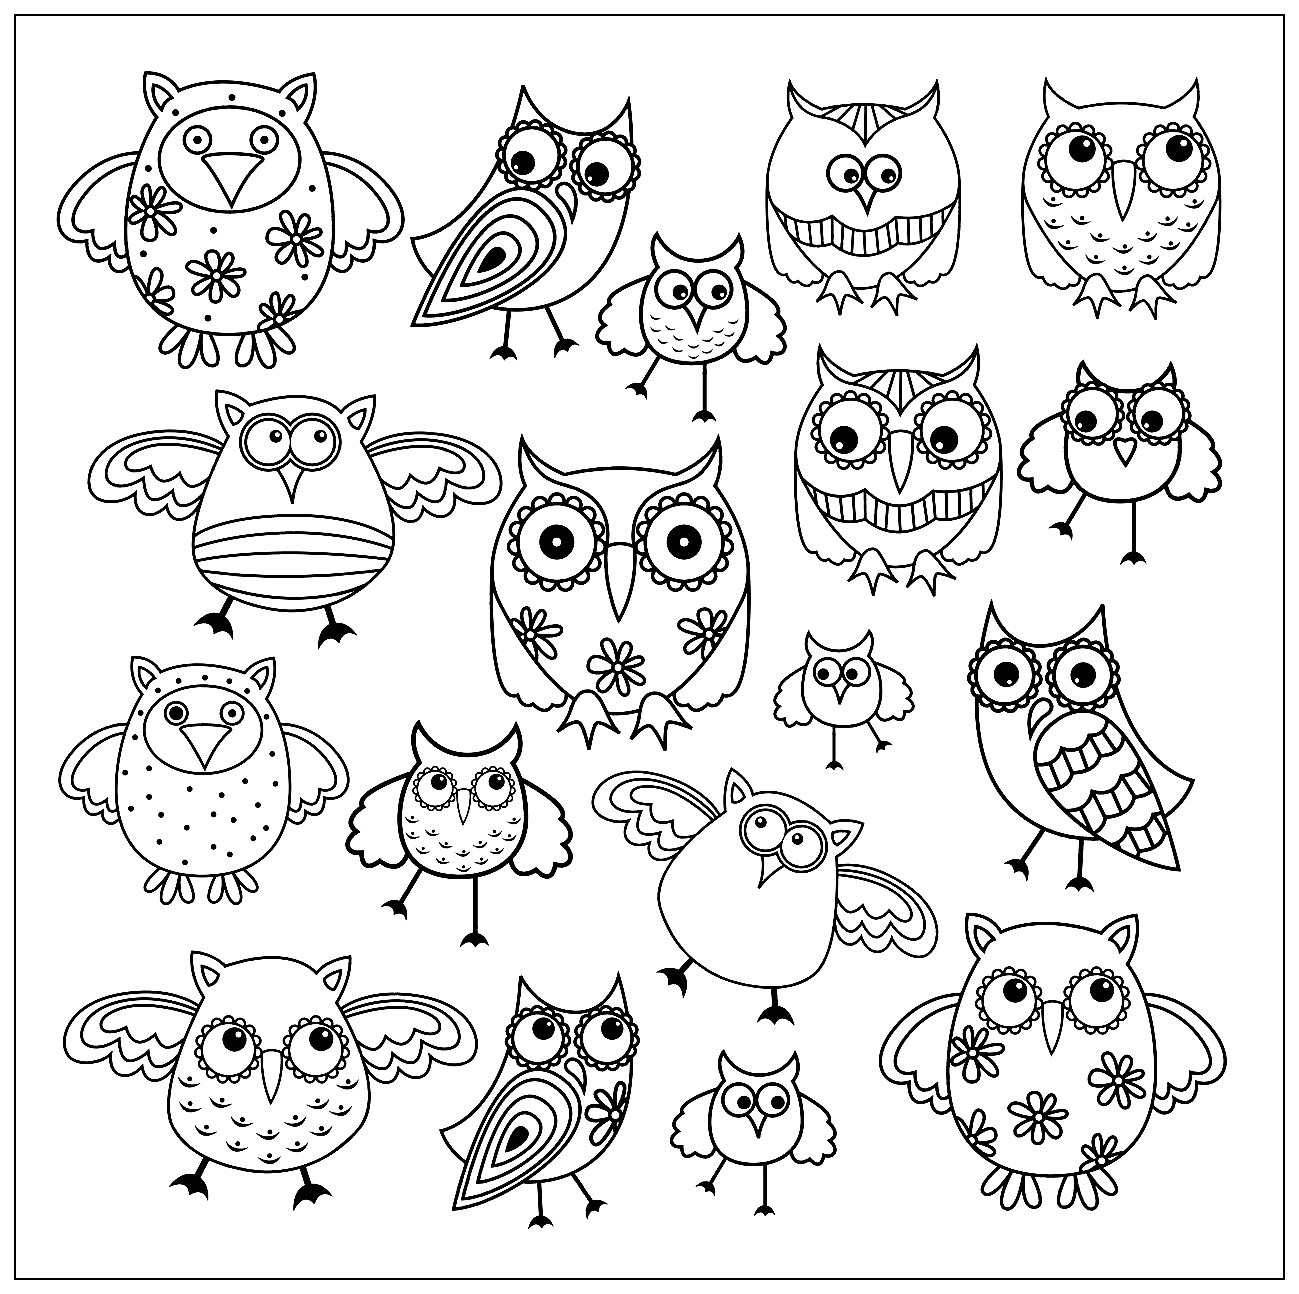 coloring page doodle owls 2 free to print - Coloring The Pictures